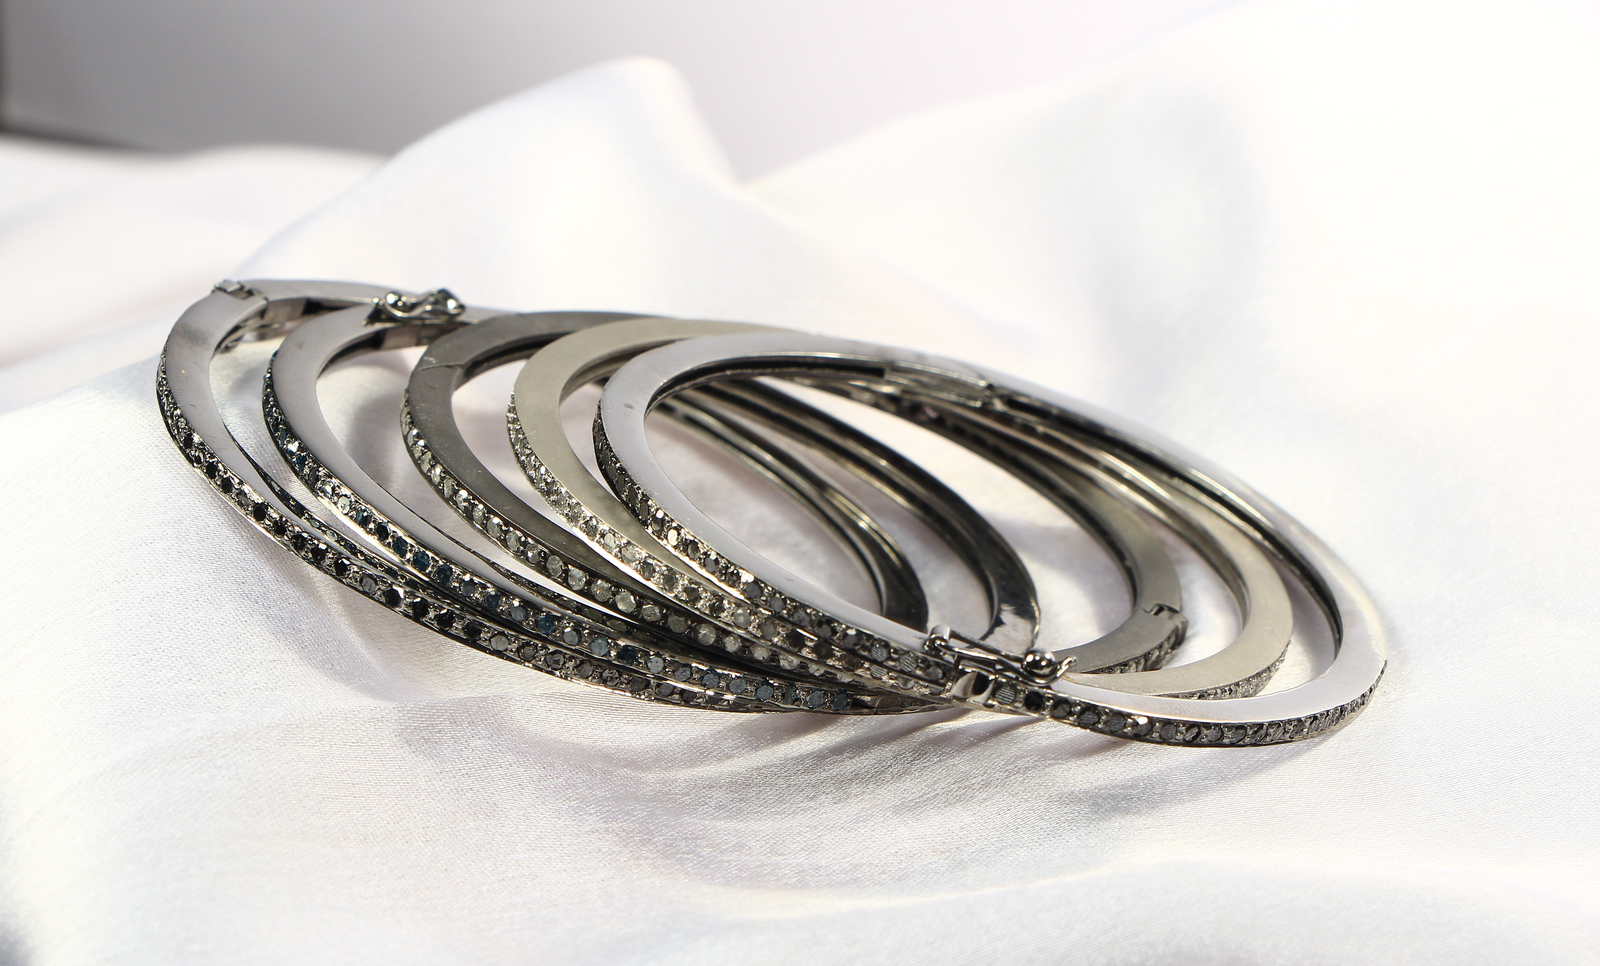 Round Bangle Openable with Clasp .925 Sterling Silver with 1 row Pave Diamond